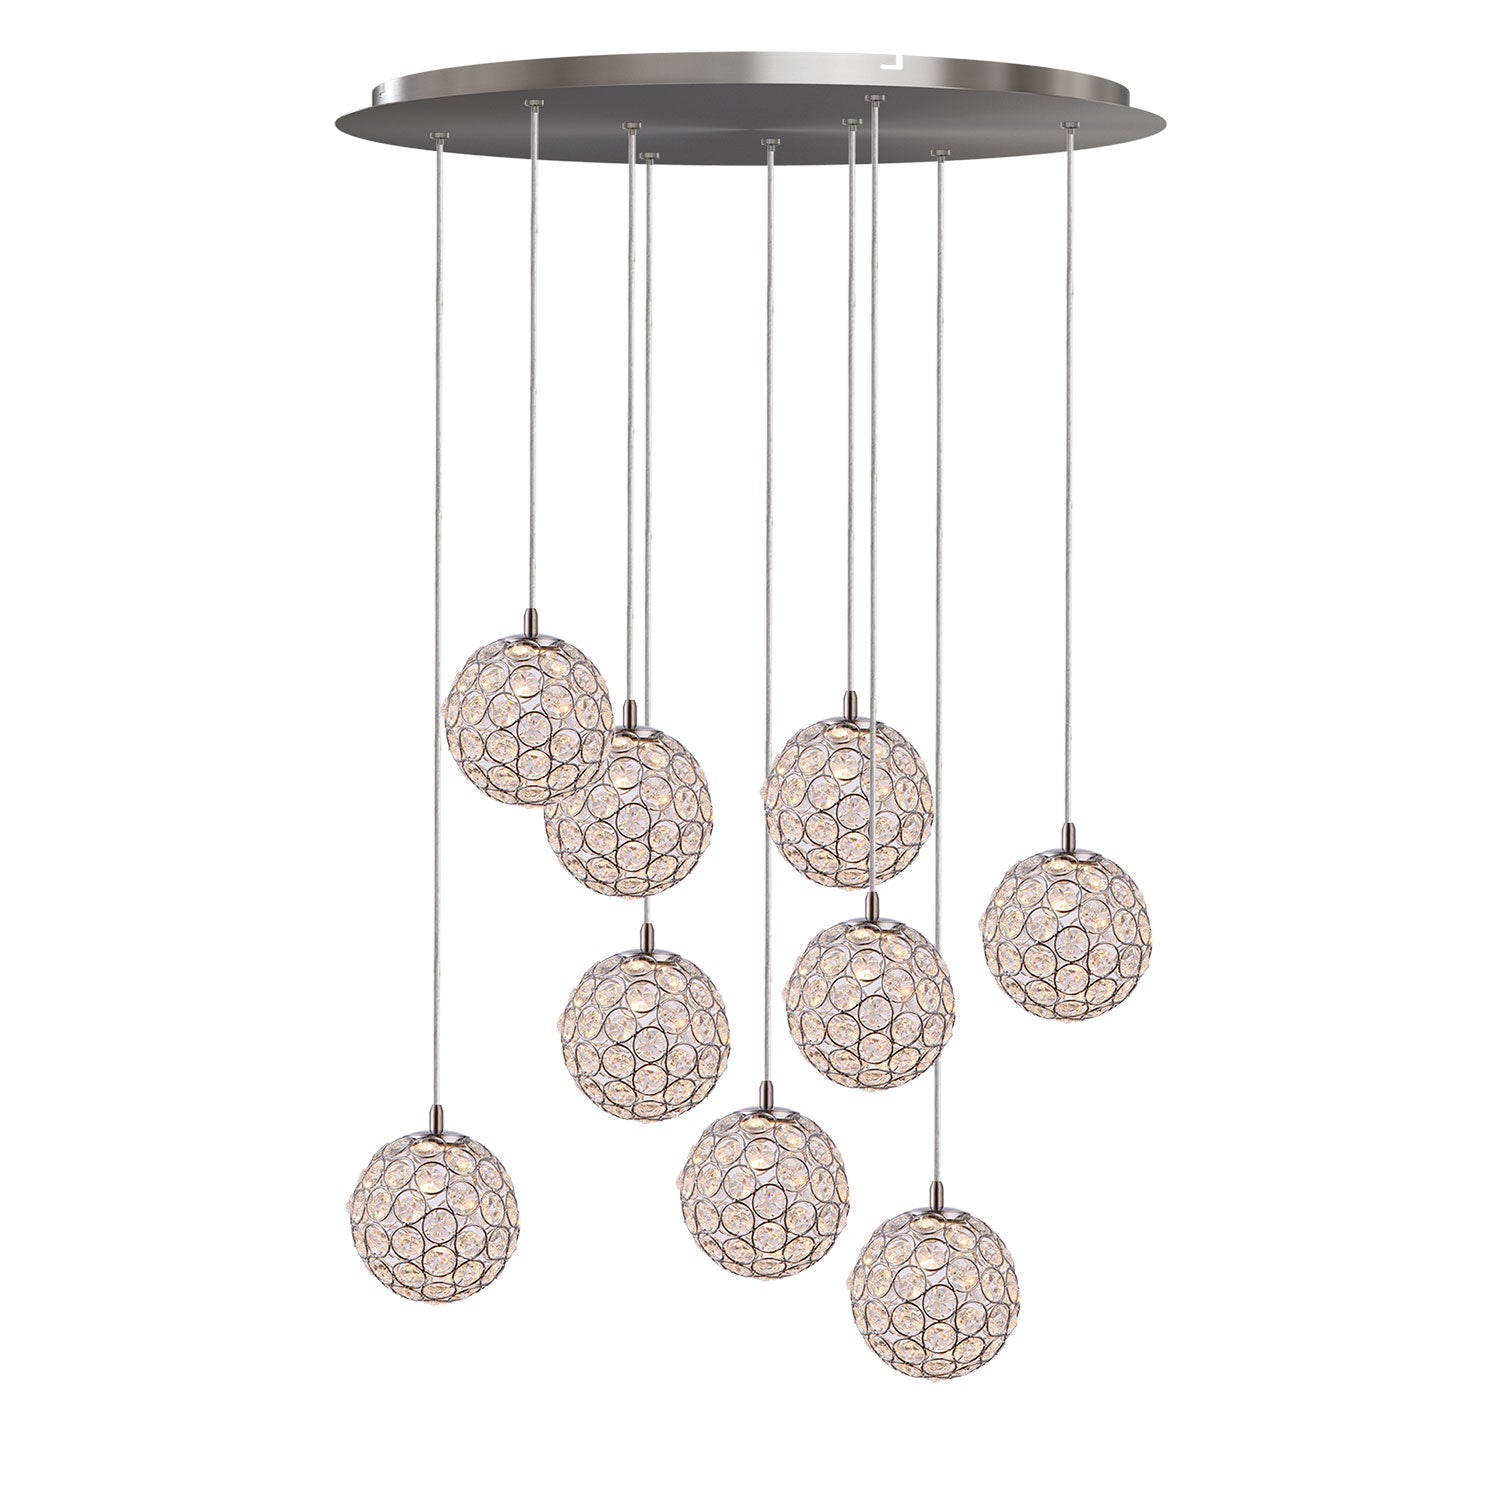 Mars 9-light LED mini pendant